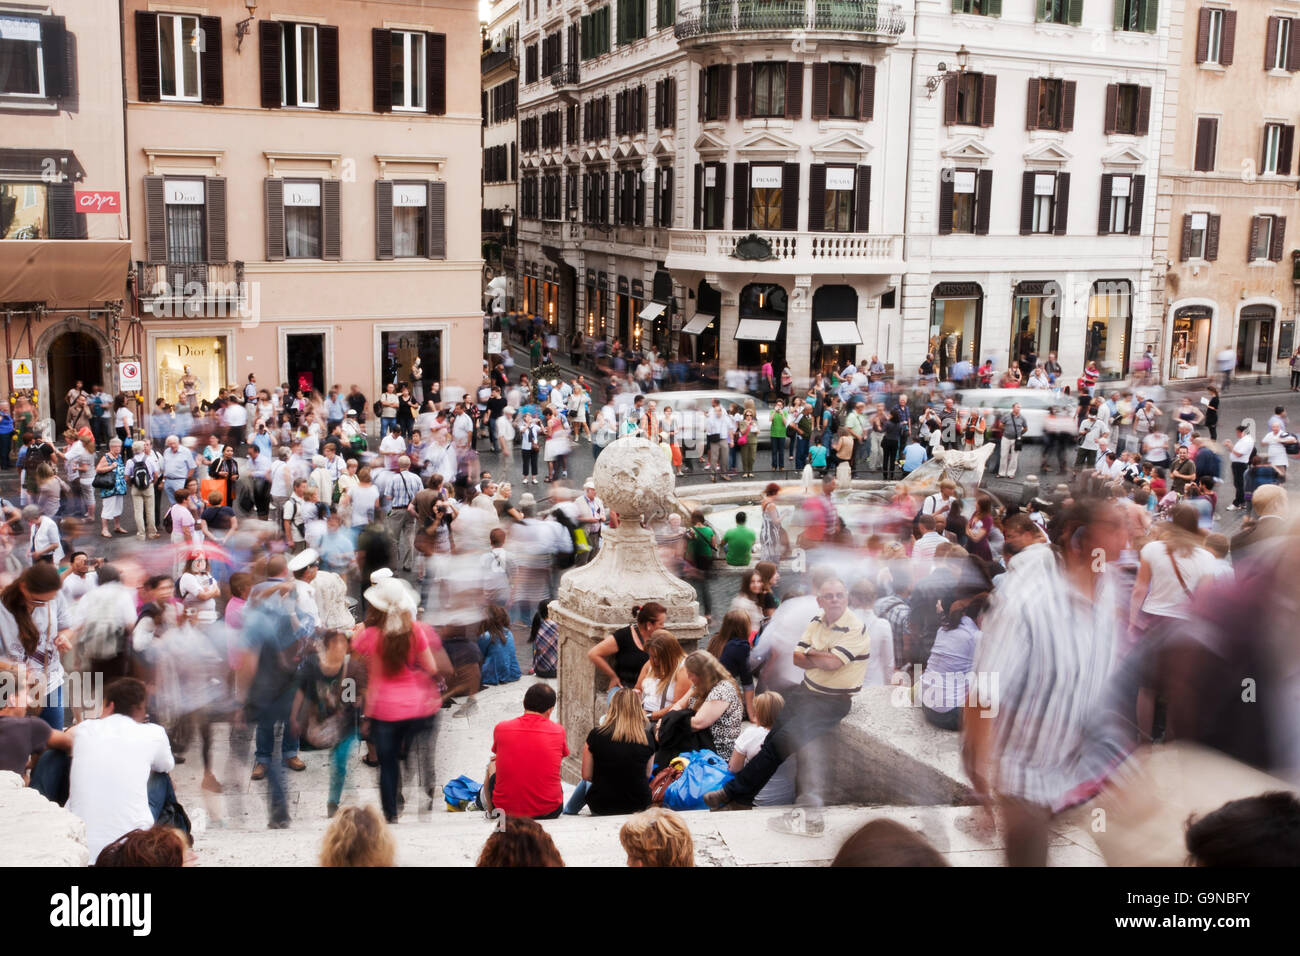 Long Exposure of People at Piazza di Spagna Rome, Italy, 26.9.2012: For Editorial Use Only! - Stock Image